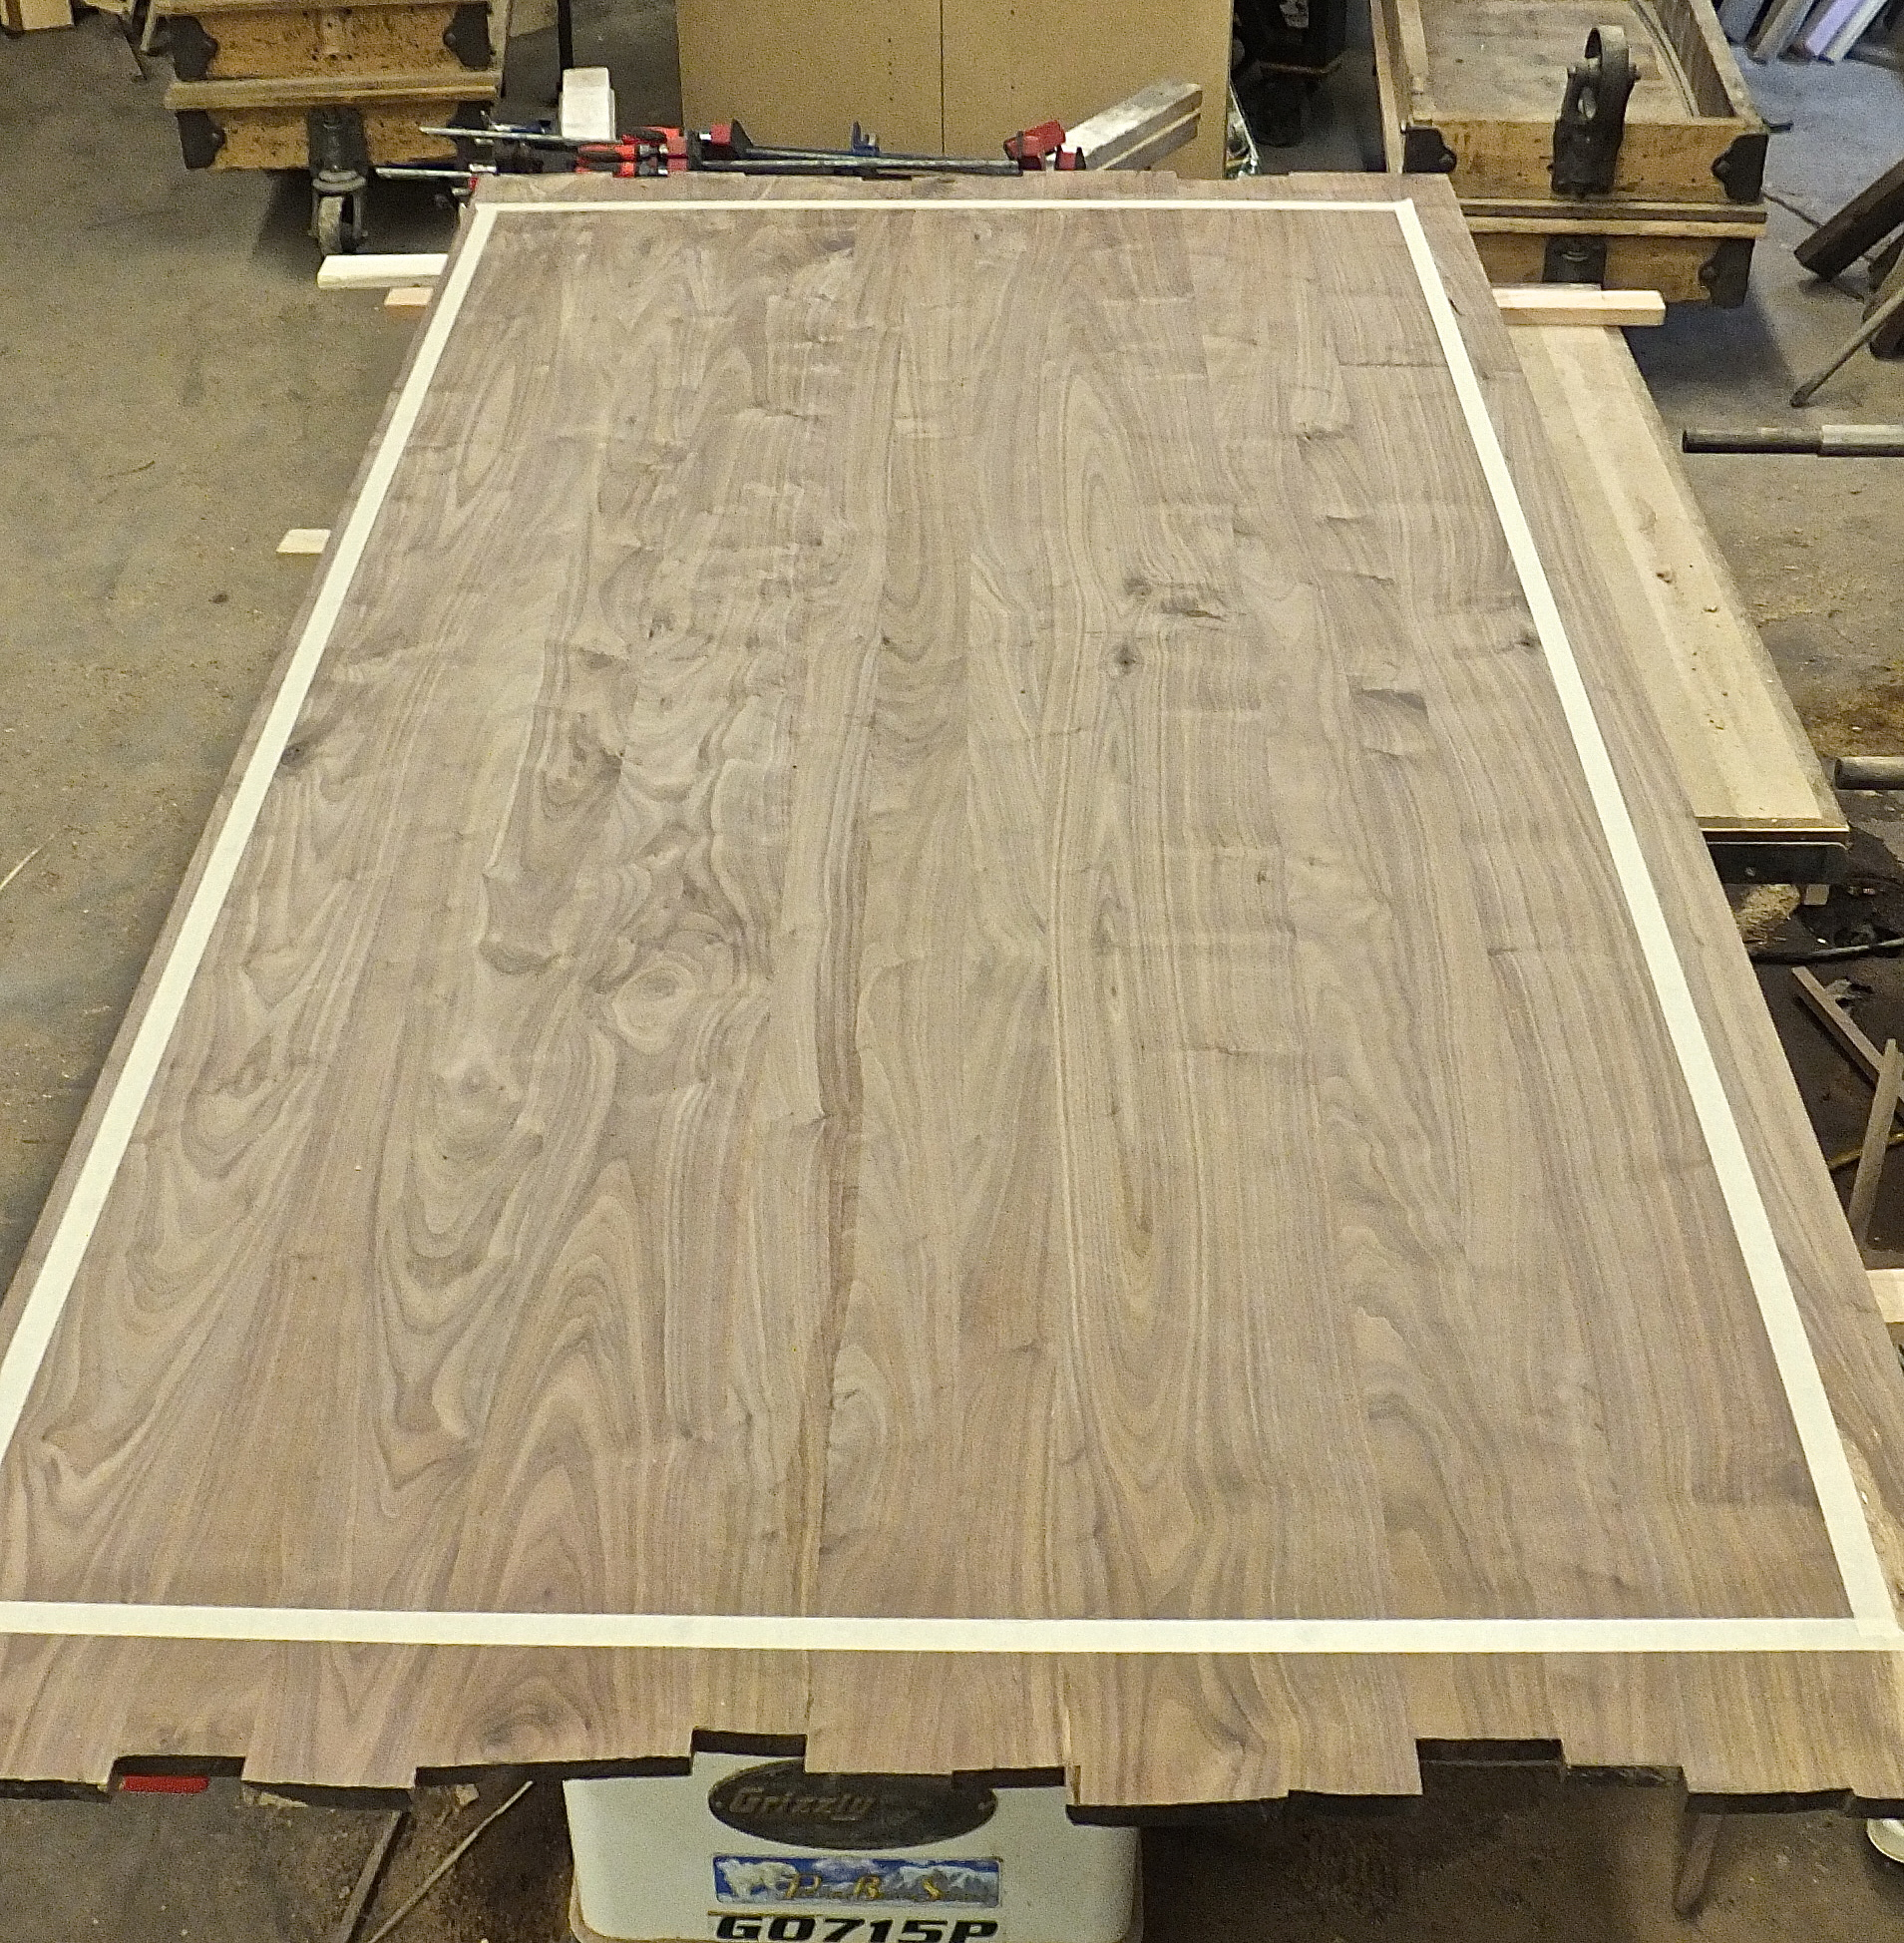 How To Make A Thick Countertop Out Of Thin Wood Wunderwoods